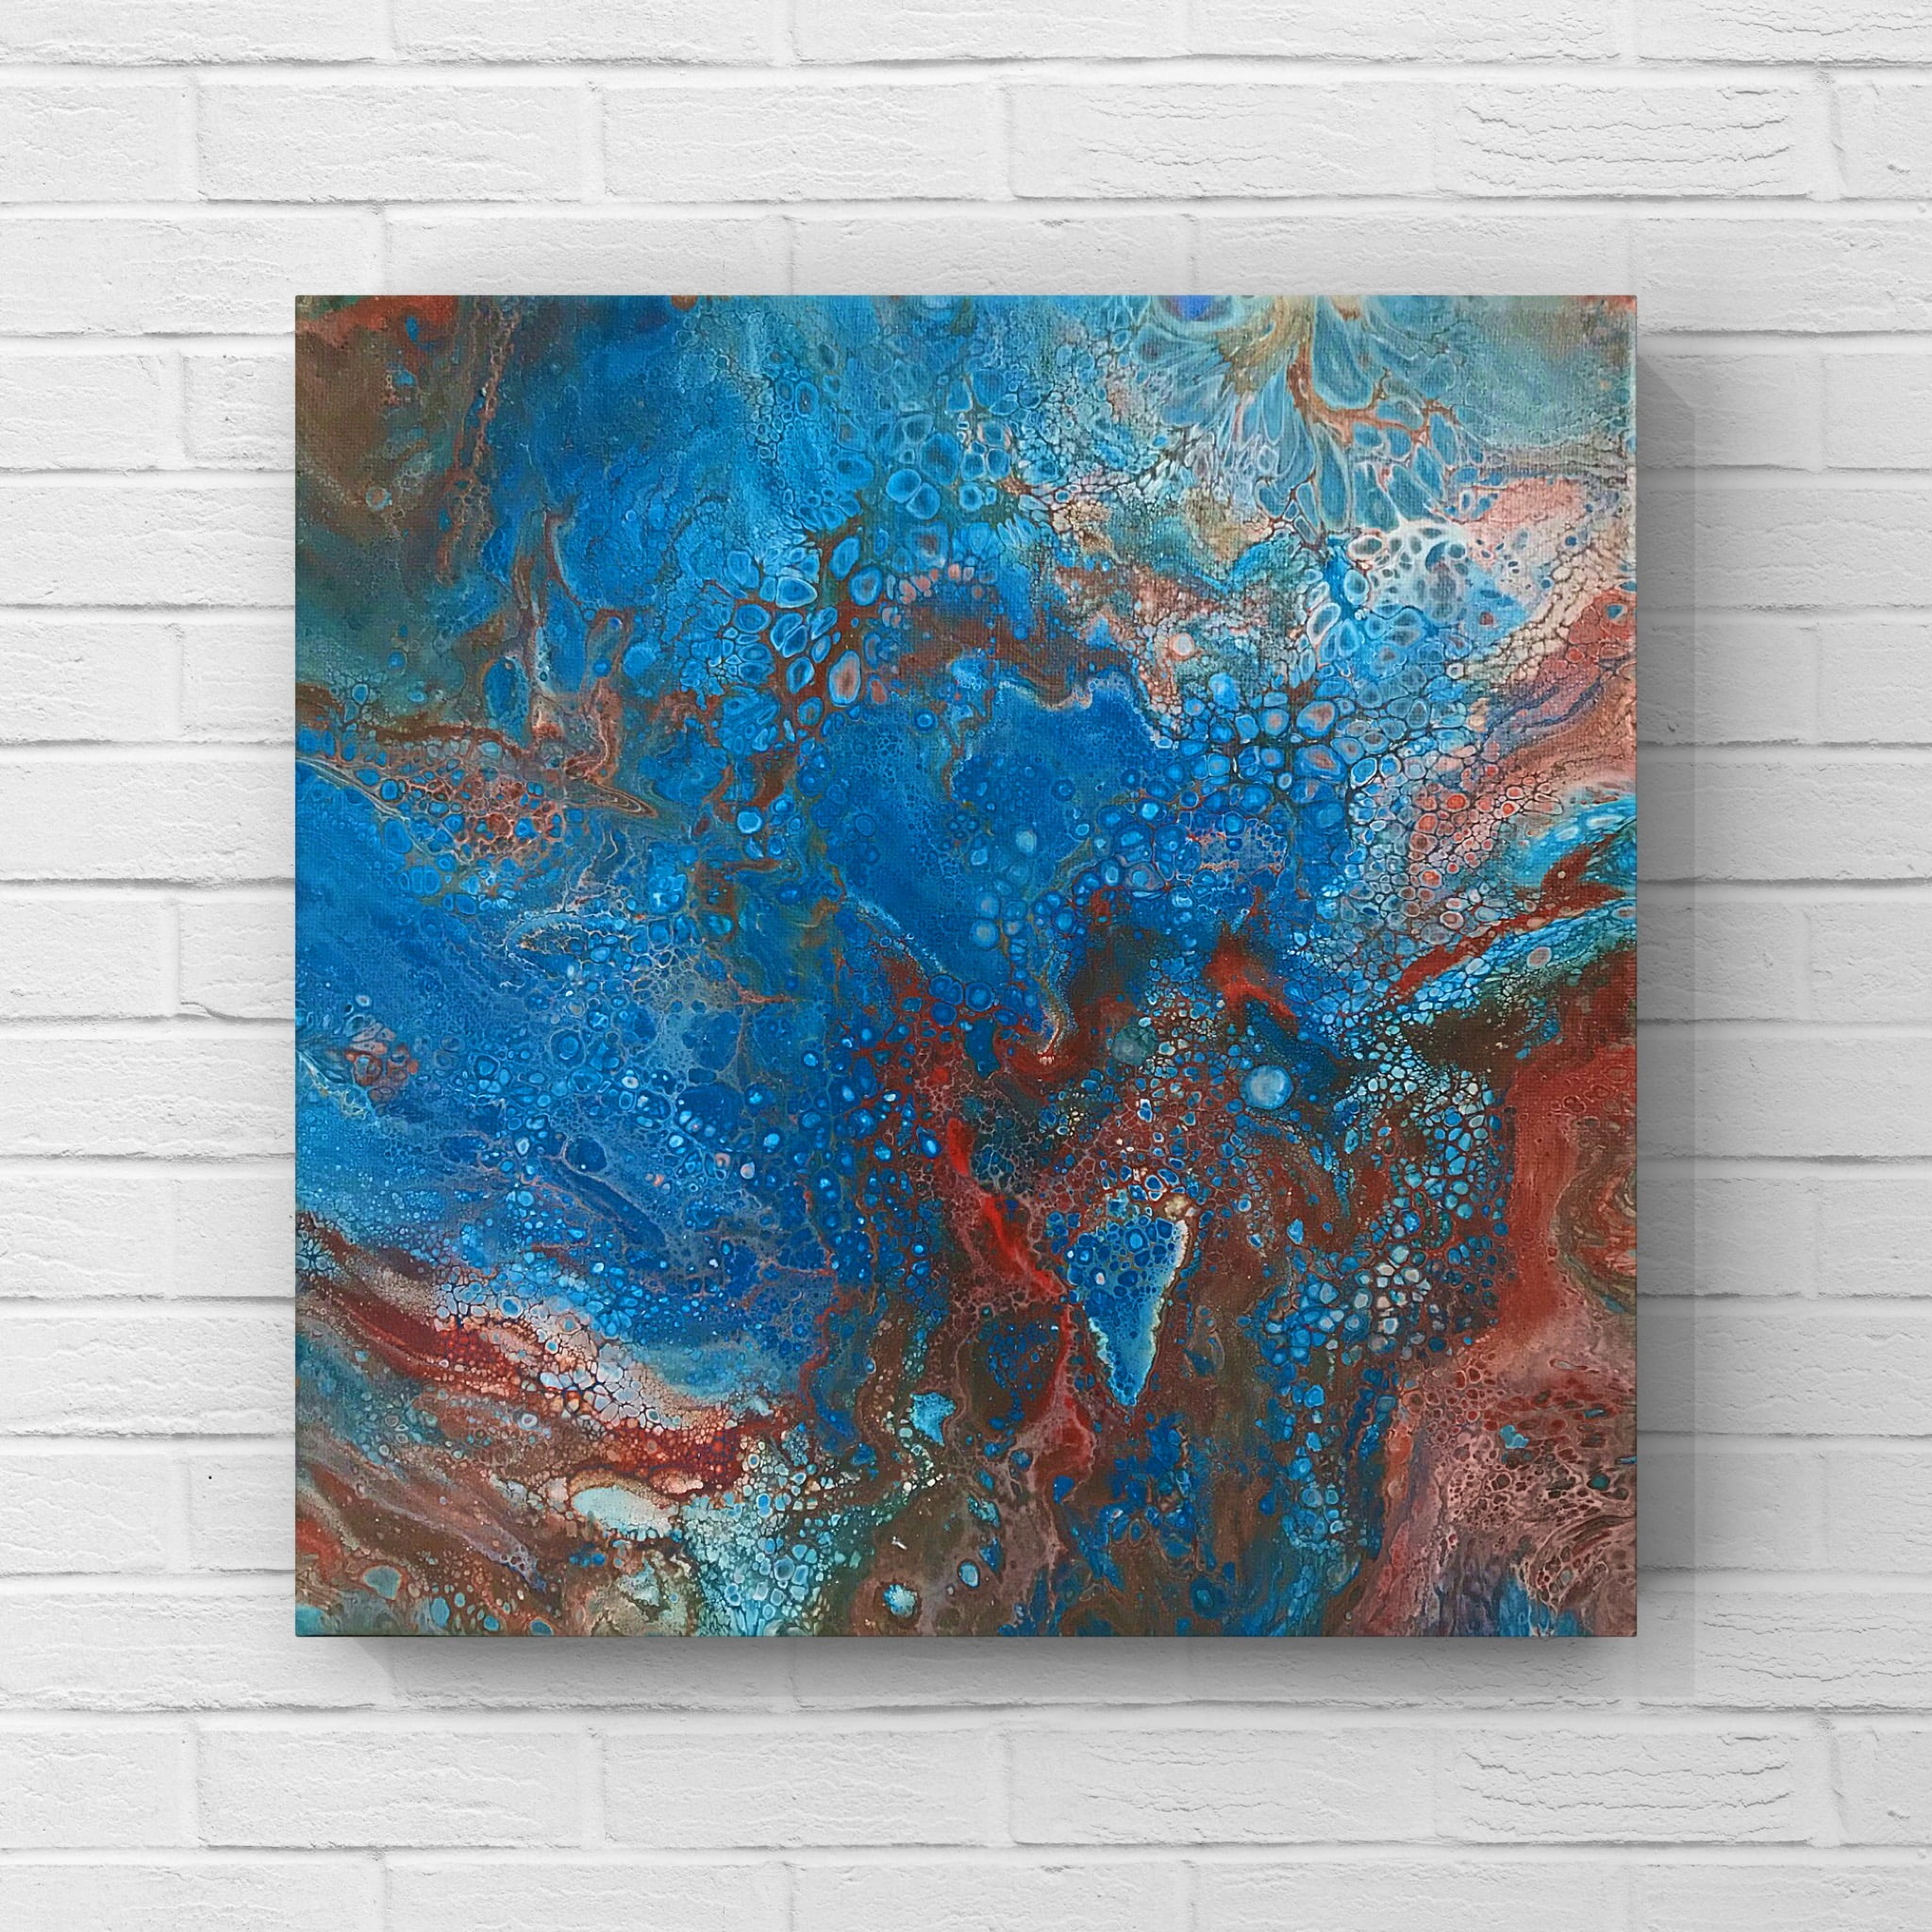 Harvey Abstract Acrylic Pour Painting 12 by 12 Original Artwork